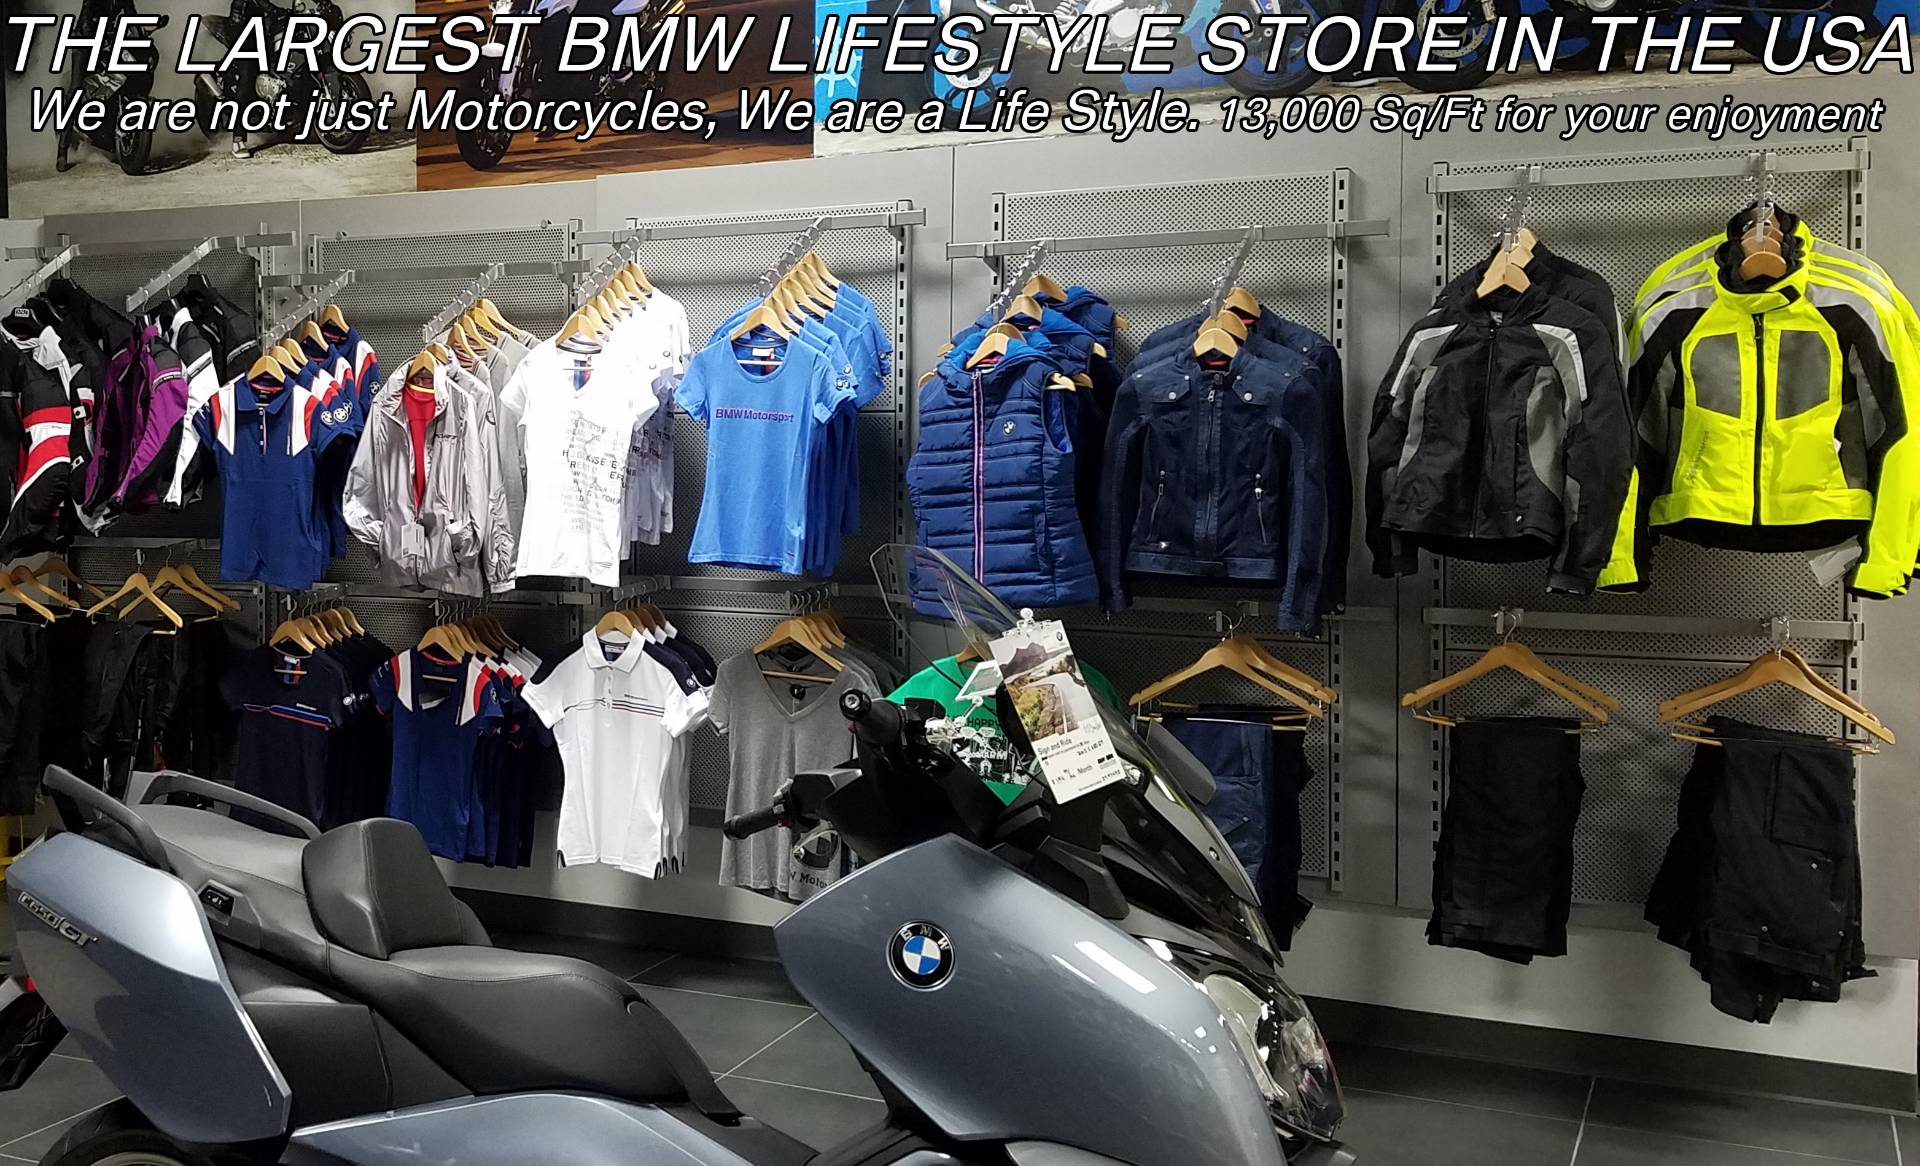 New 2019 BMW R 1250 GS for sale, New BMW for sale R 1250GS, New BMW Motorcycle R1250GS for sale, new BMW 1250GS, R1250GS, GS. BMW Motorcycles of Miami, Motorcycles of Miami, Motorcycles Miami, New Motorcycles, Used Motorcycles, pre-owned. #BMWMotorcyclesOfMiami #MotorcyclesOfMiami. - Photo 35